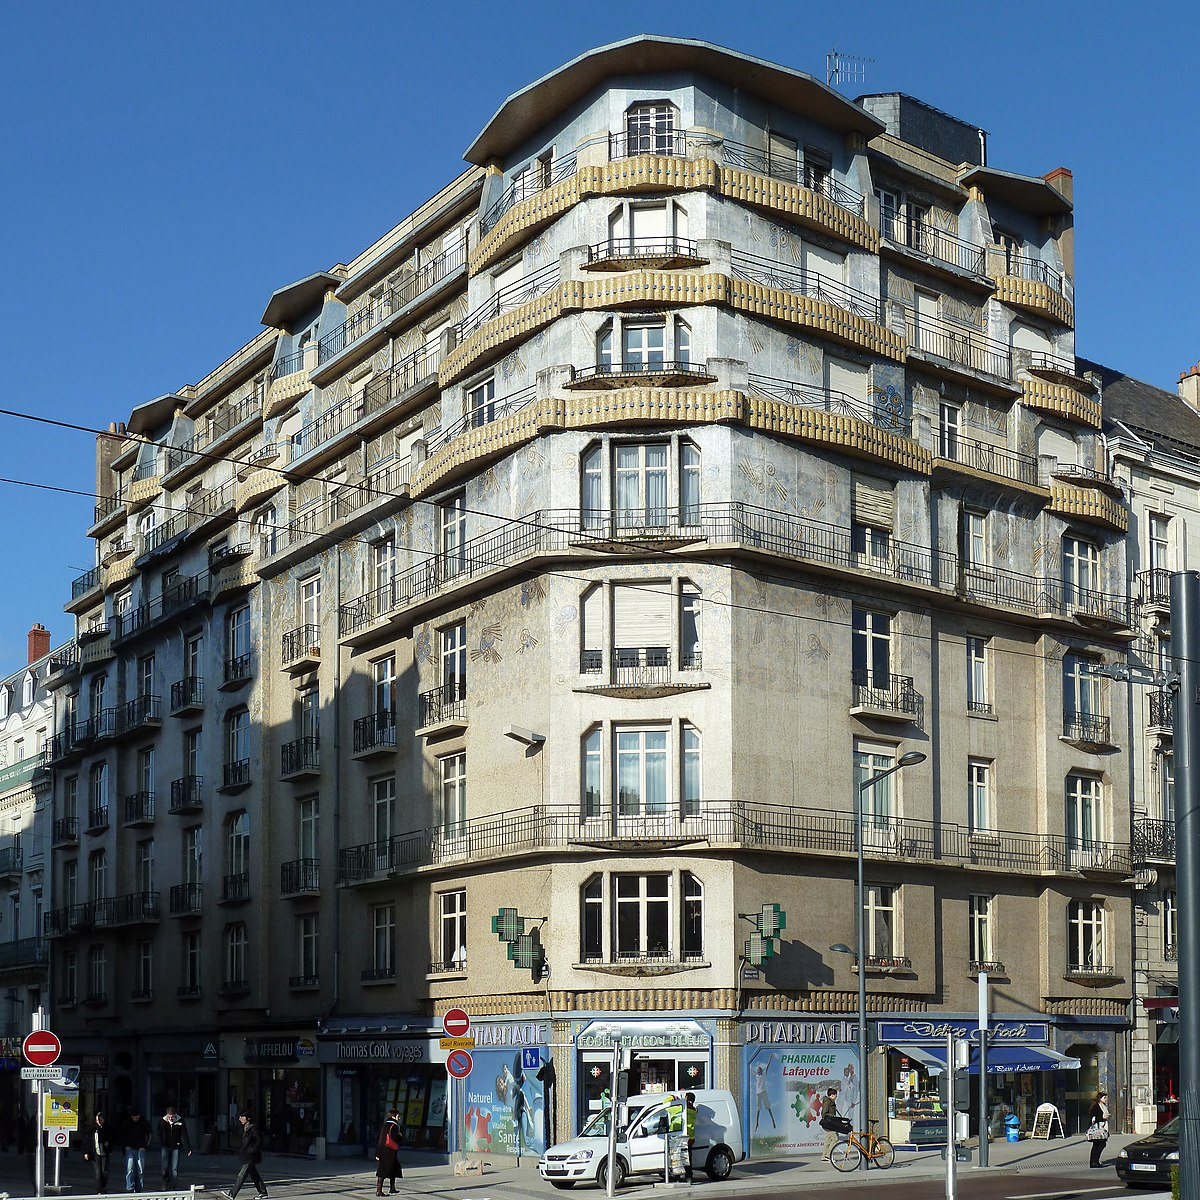 Maison bleue angers wikip dia for Decoration maison wikipedia